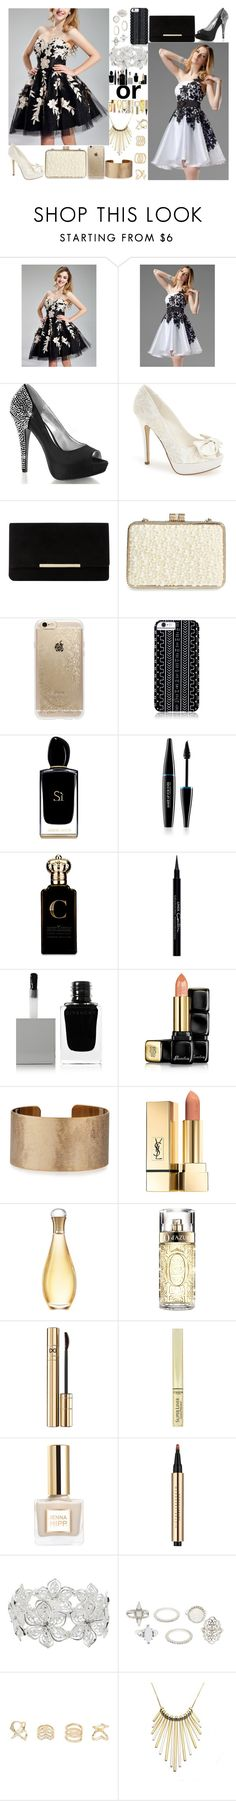 """""""harry dress"""" by biebergirl1013 ❤ liked on Polyvore featuring Menbur, Dune, Sondra Roberts, Rifle Paper Co, Savannah Hayes, Giorgio Armani, MAKE UP FOR EVER, Clive Christian, Givenchy and Guerlain"""